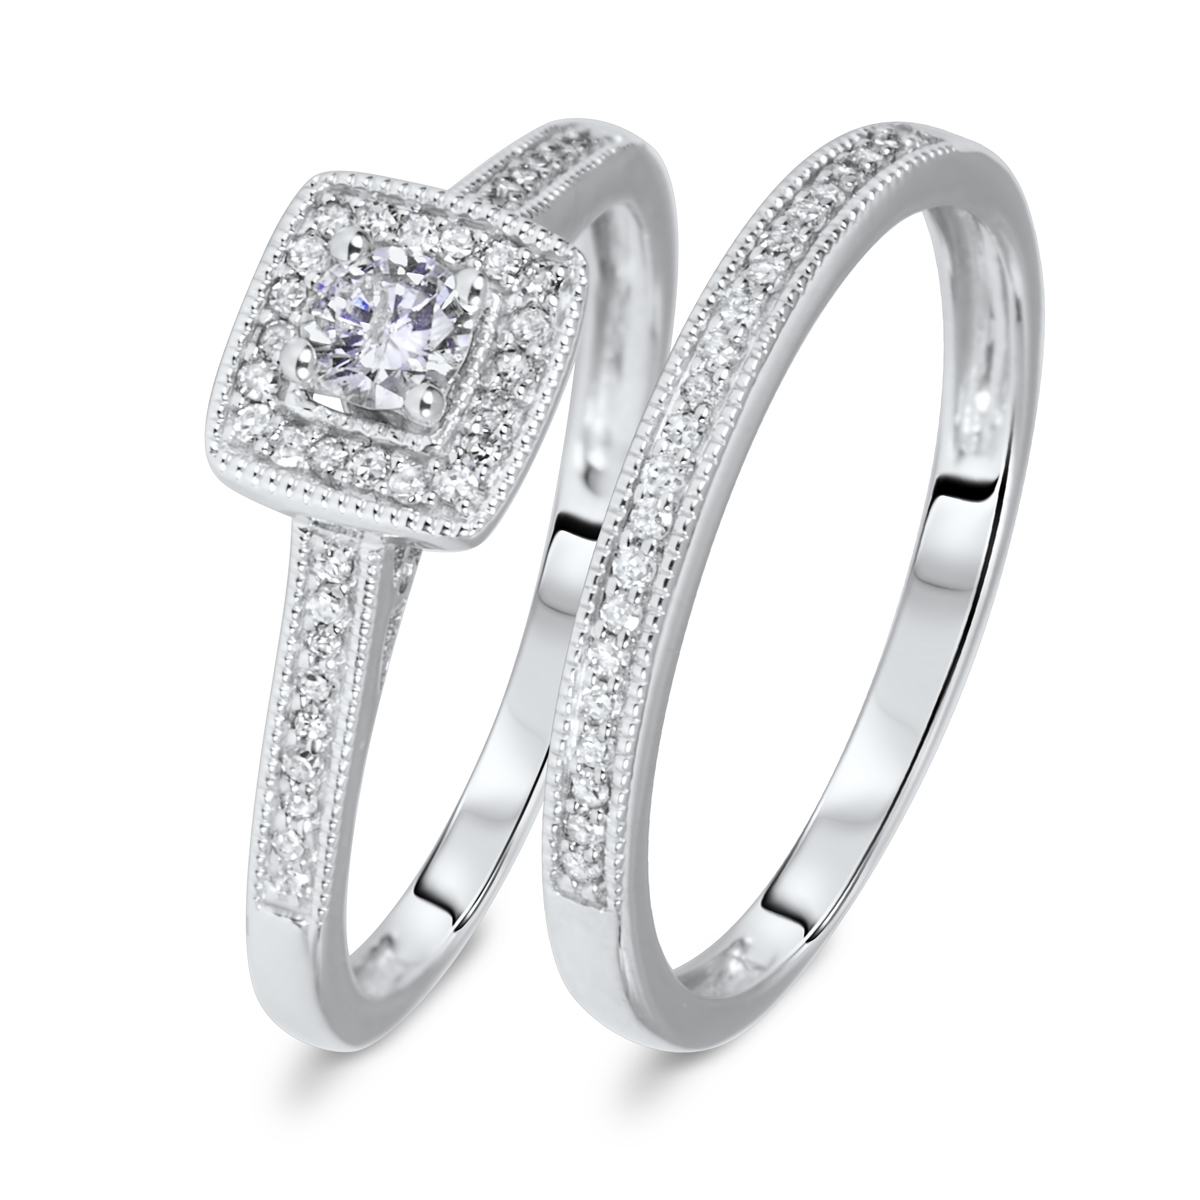 Charmant T.W. Round Cut Diamond Ladies Bridal Wedding Ring Set 14K White Gold